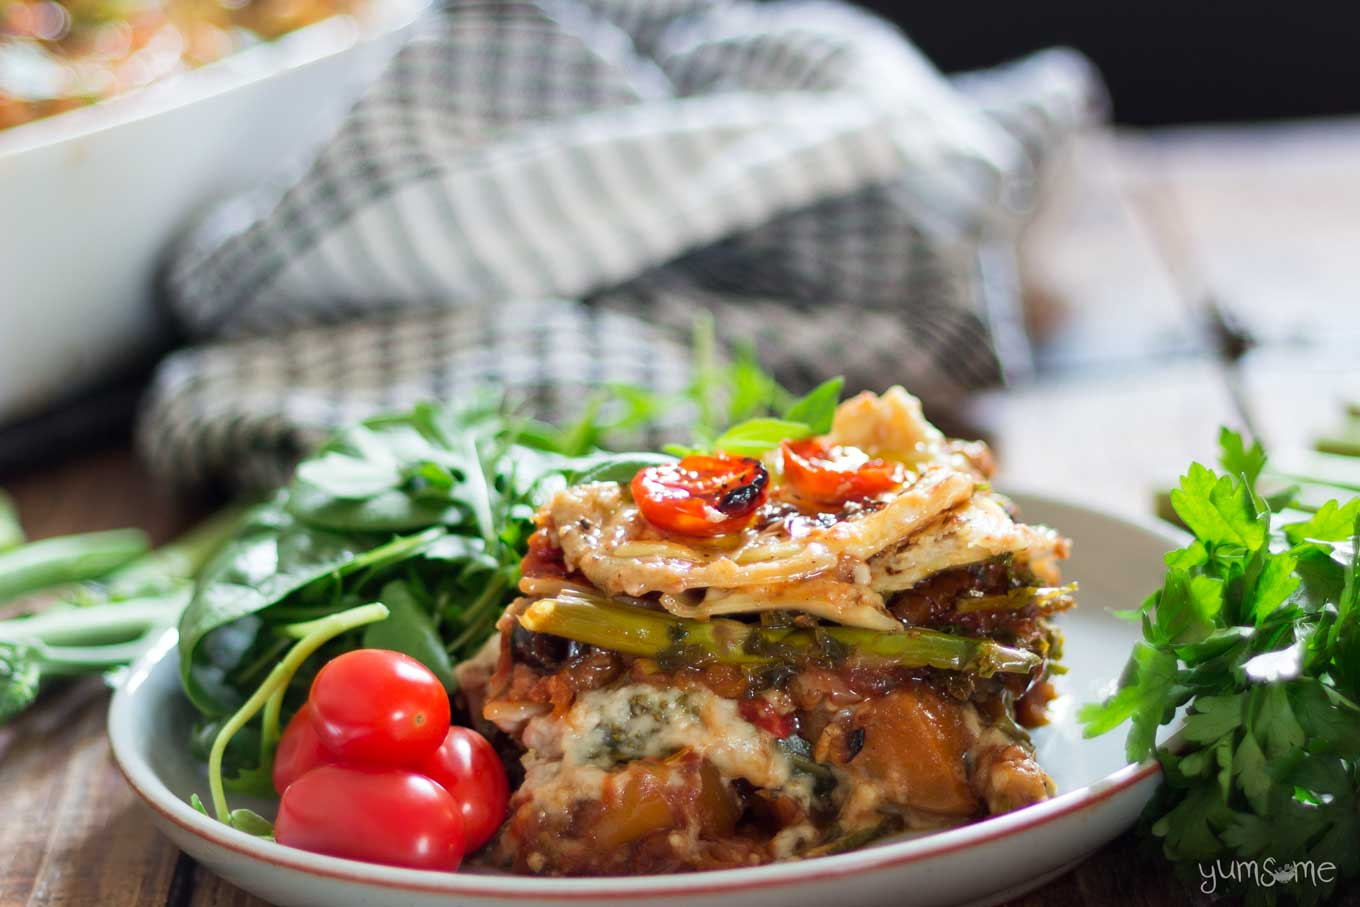 a plate of loaded vegan lasagne | yumsome.com